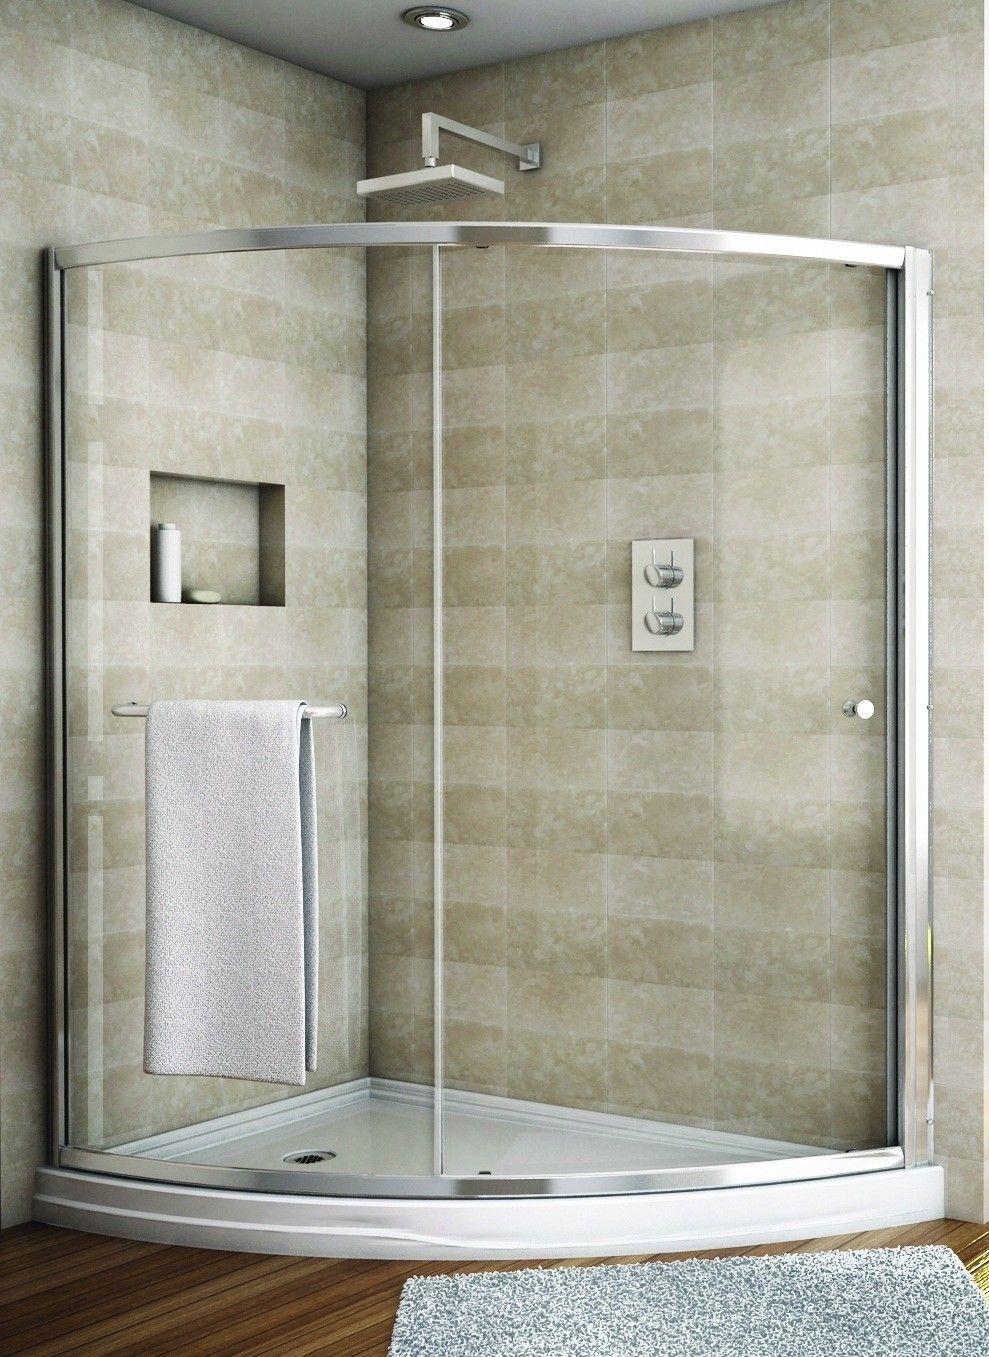 Fleurco Banyo Amalfi Slice Curved Sliding Frameless Shower Door